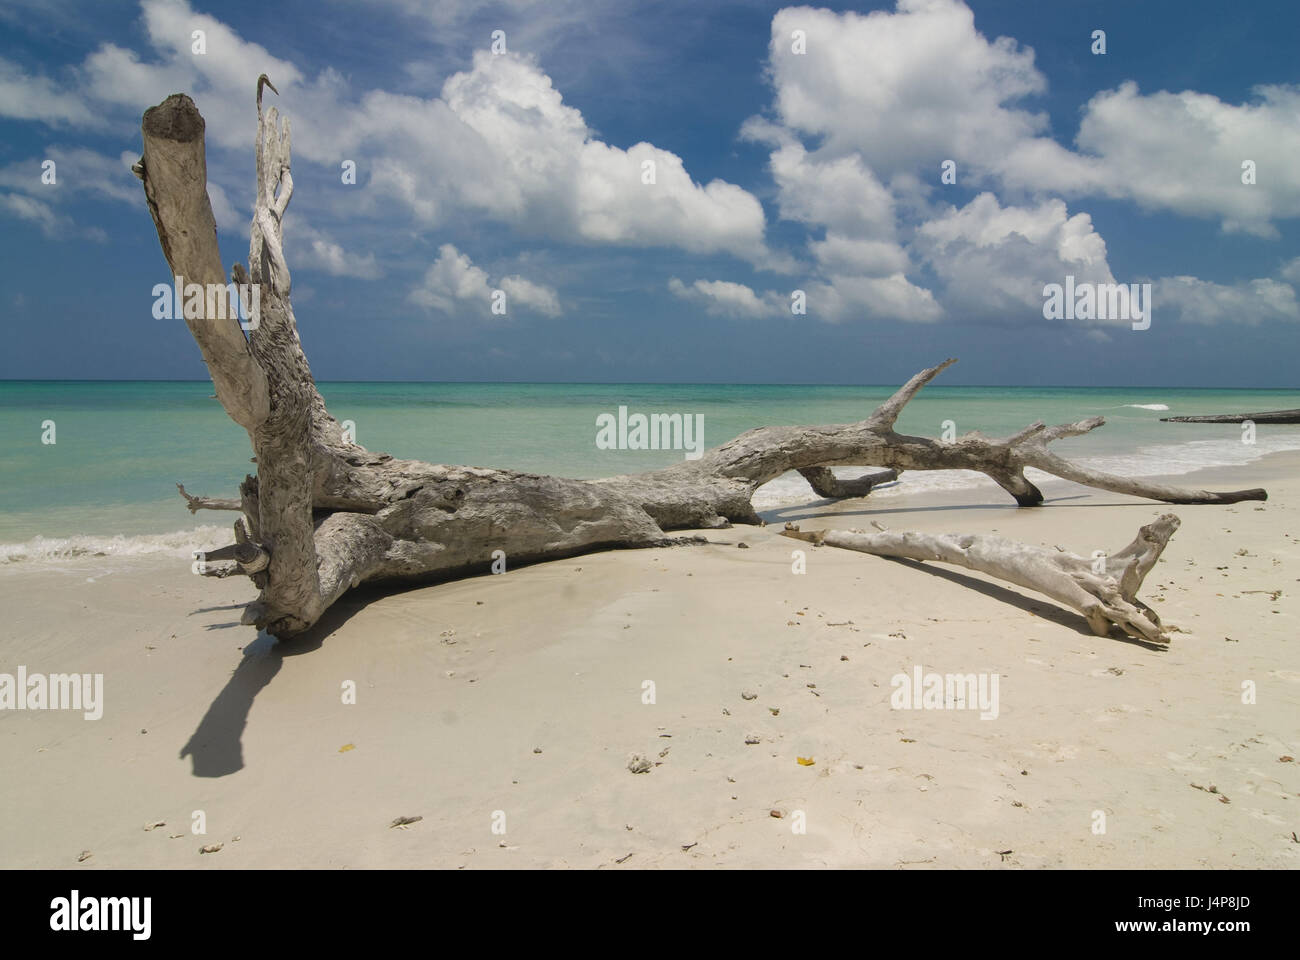 Root, sandy beach, turquoise, Indian ocean, Havelock Insel, Andamanen, India, - Stock Image